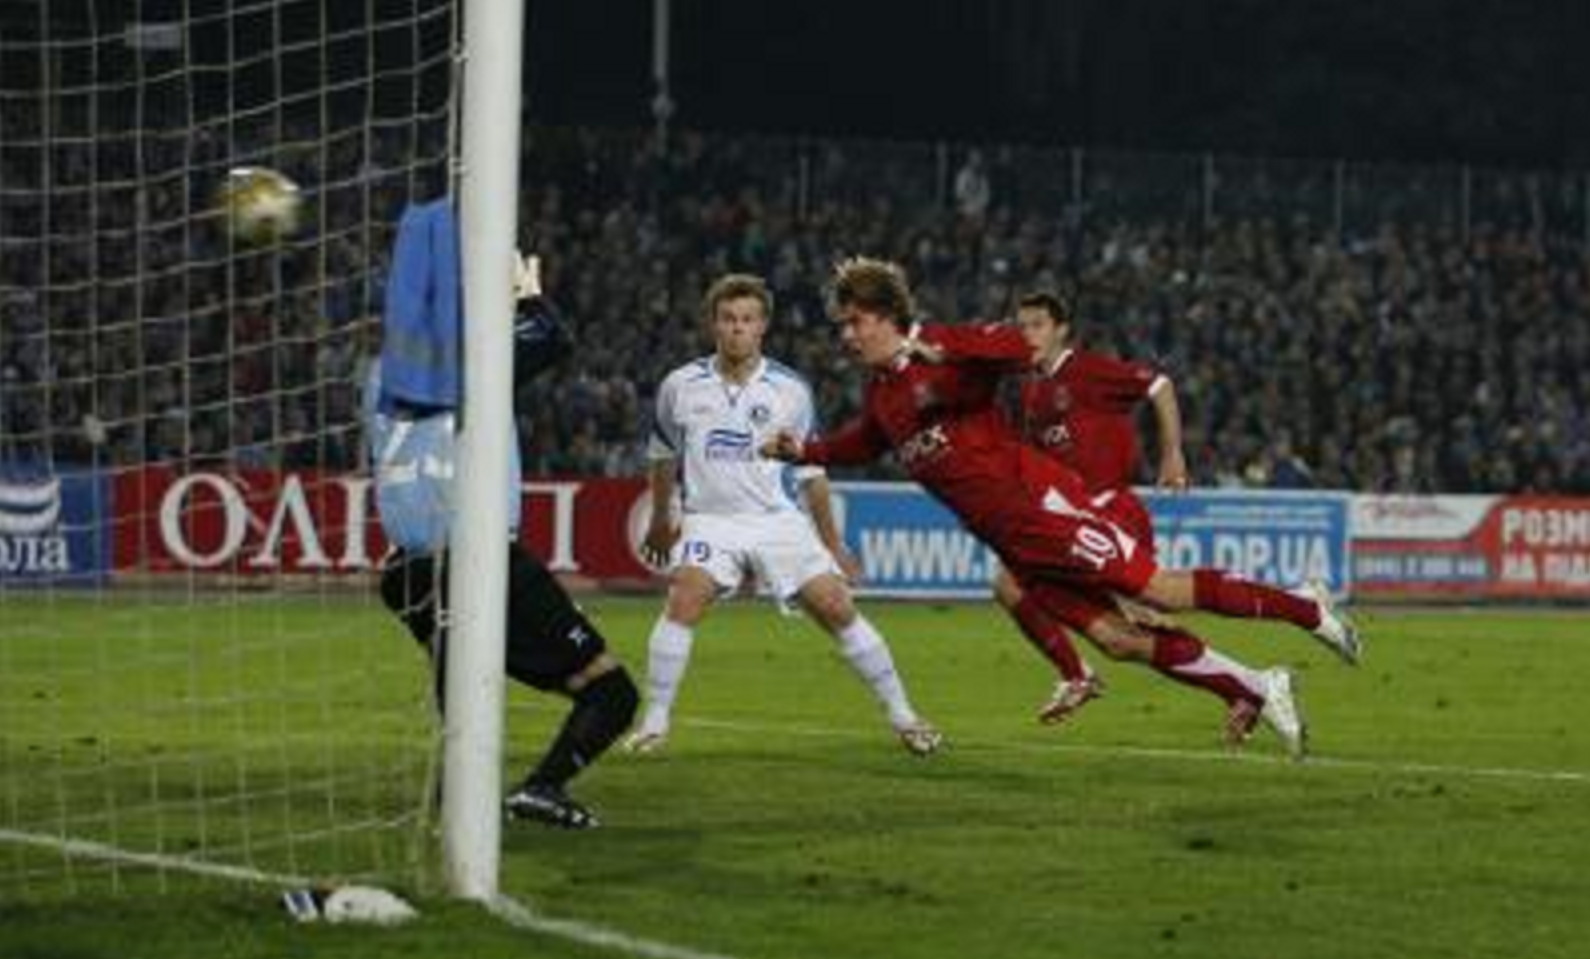 Darren Mackie scored a famous winner for the Dons against Dnipro in 2007